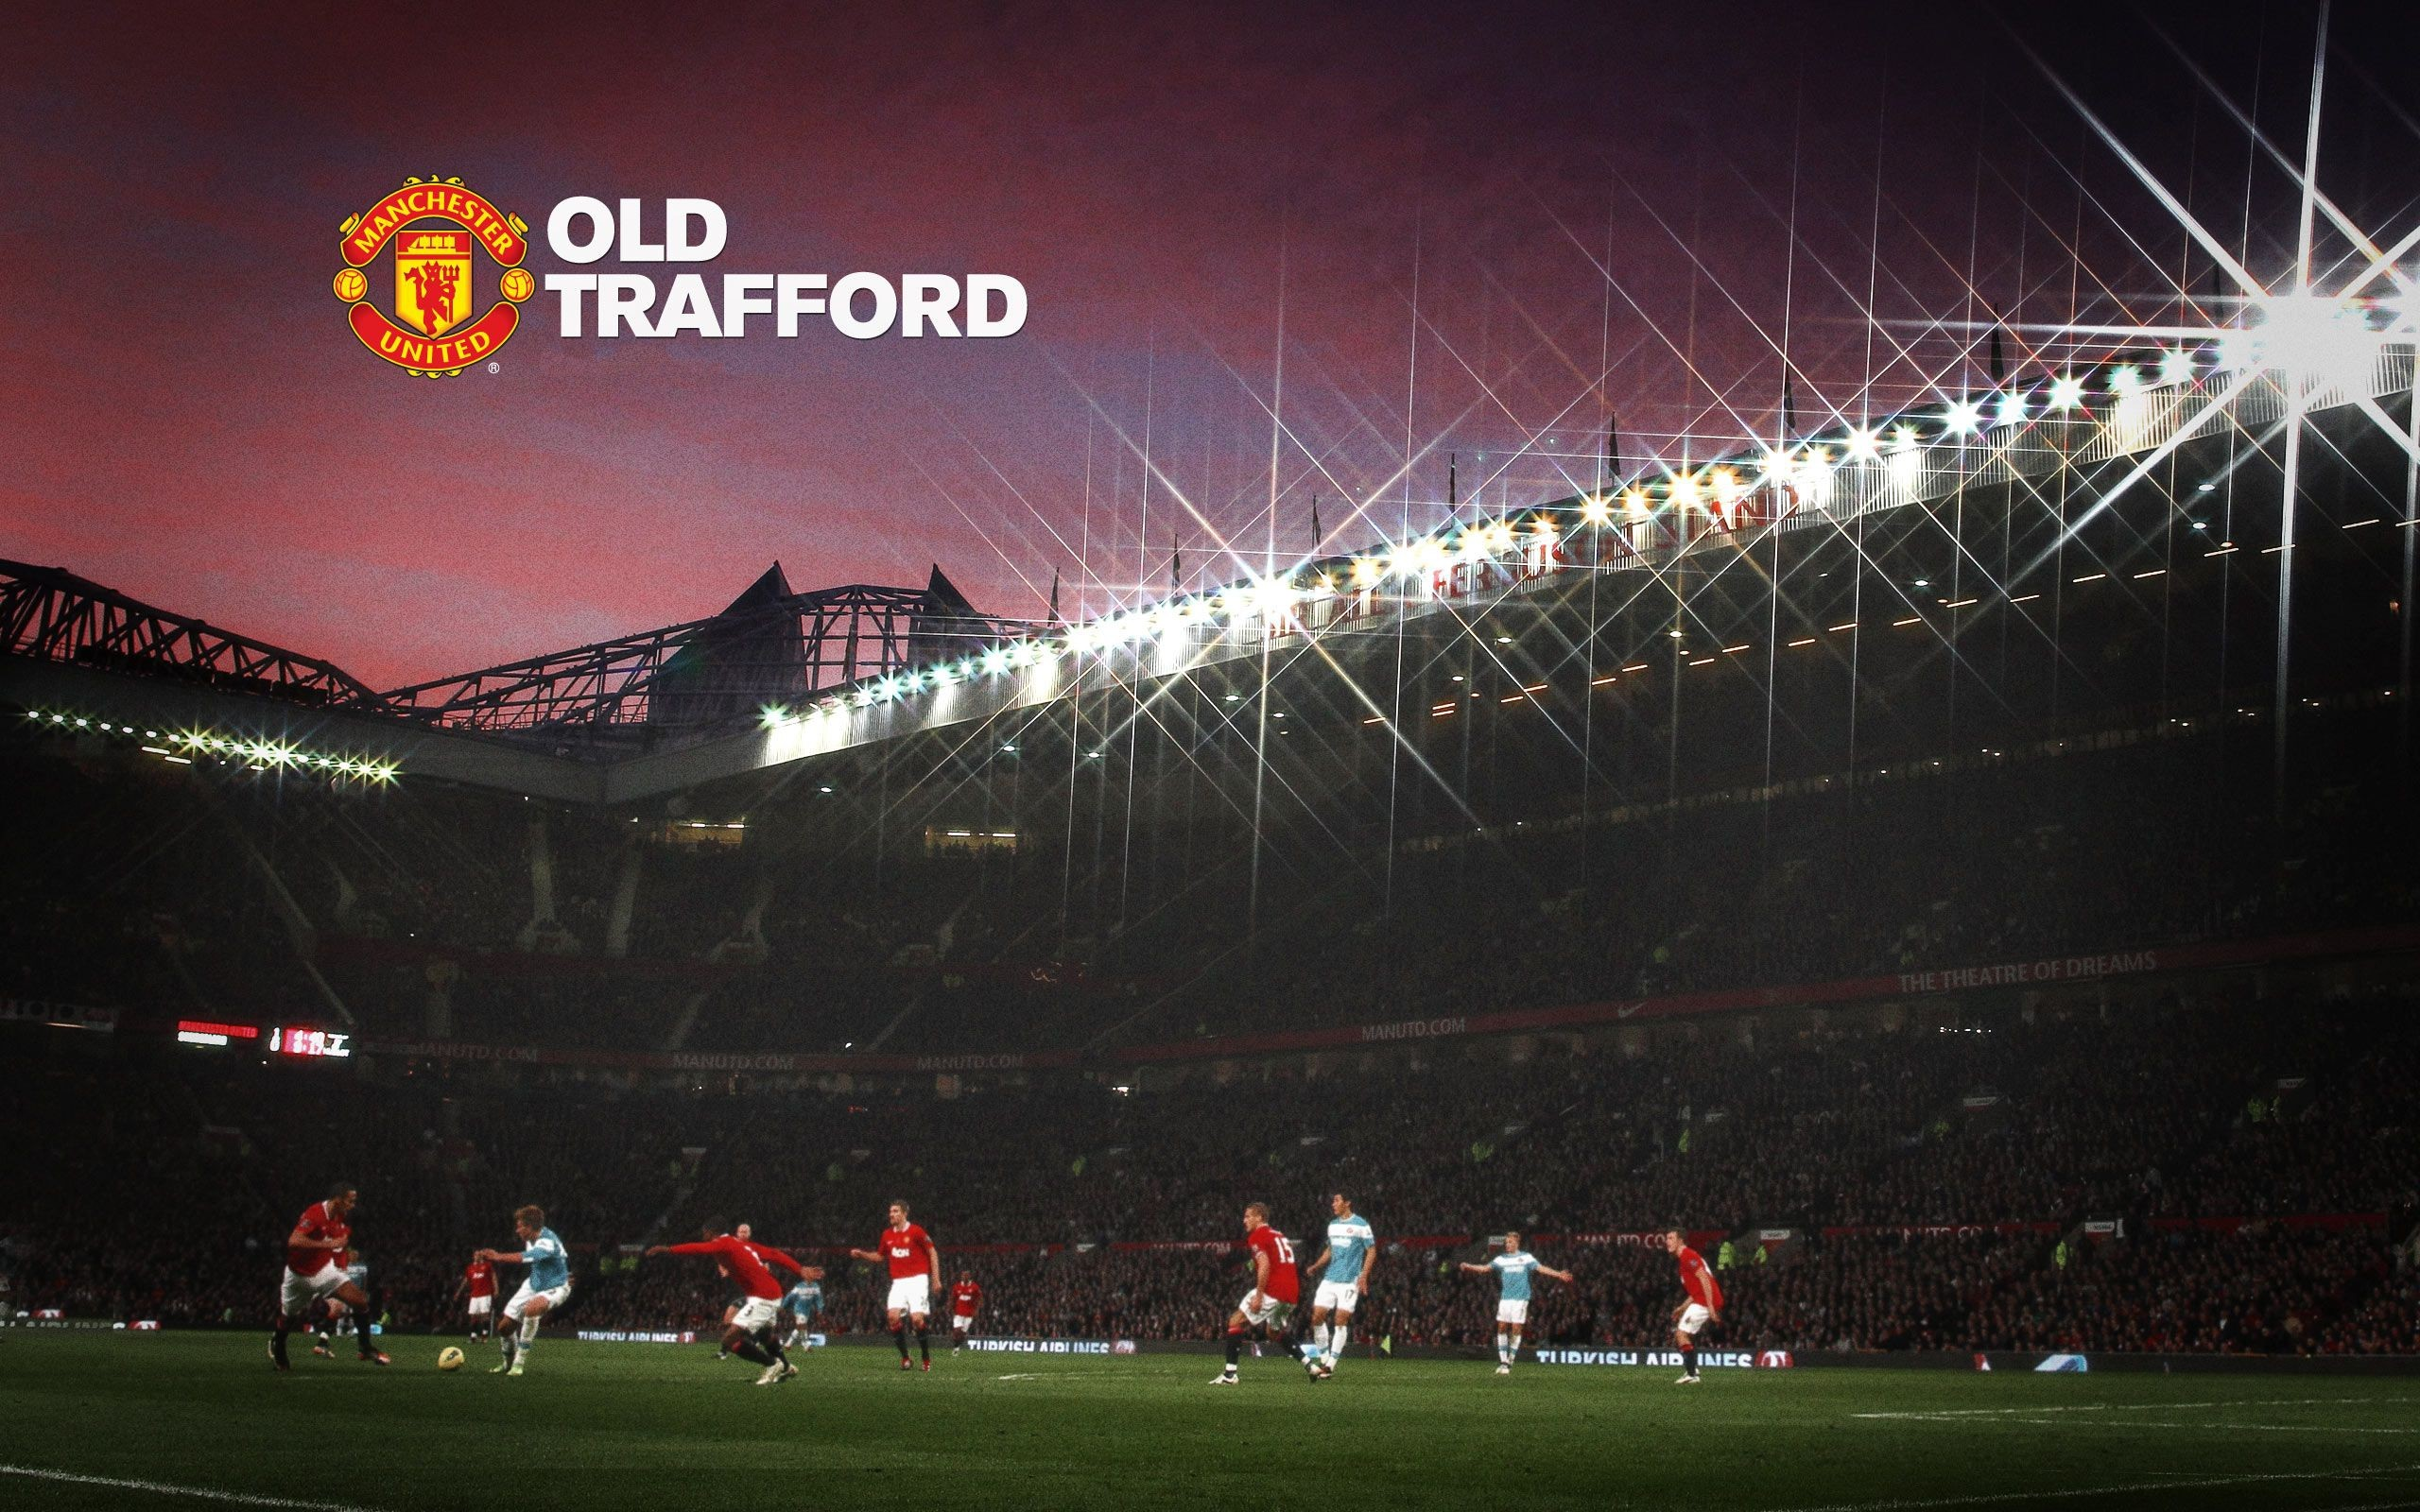 Manchester united wallpaper hd 68 images 2560x1600 manchester united high def backgrounds hd voltagebd Choice Image